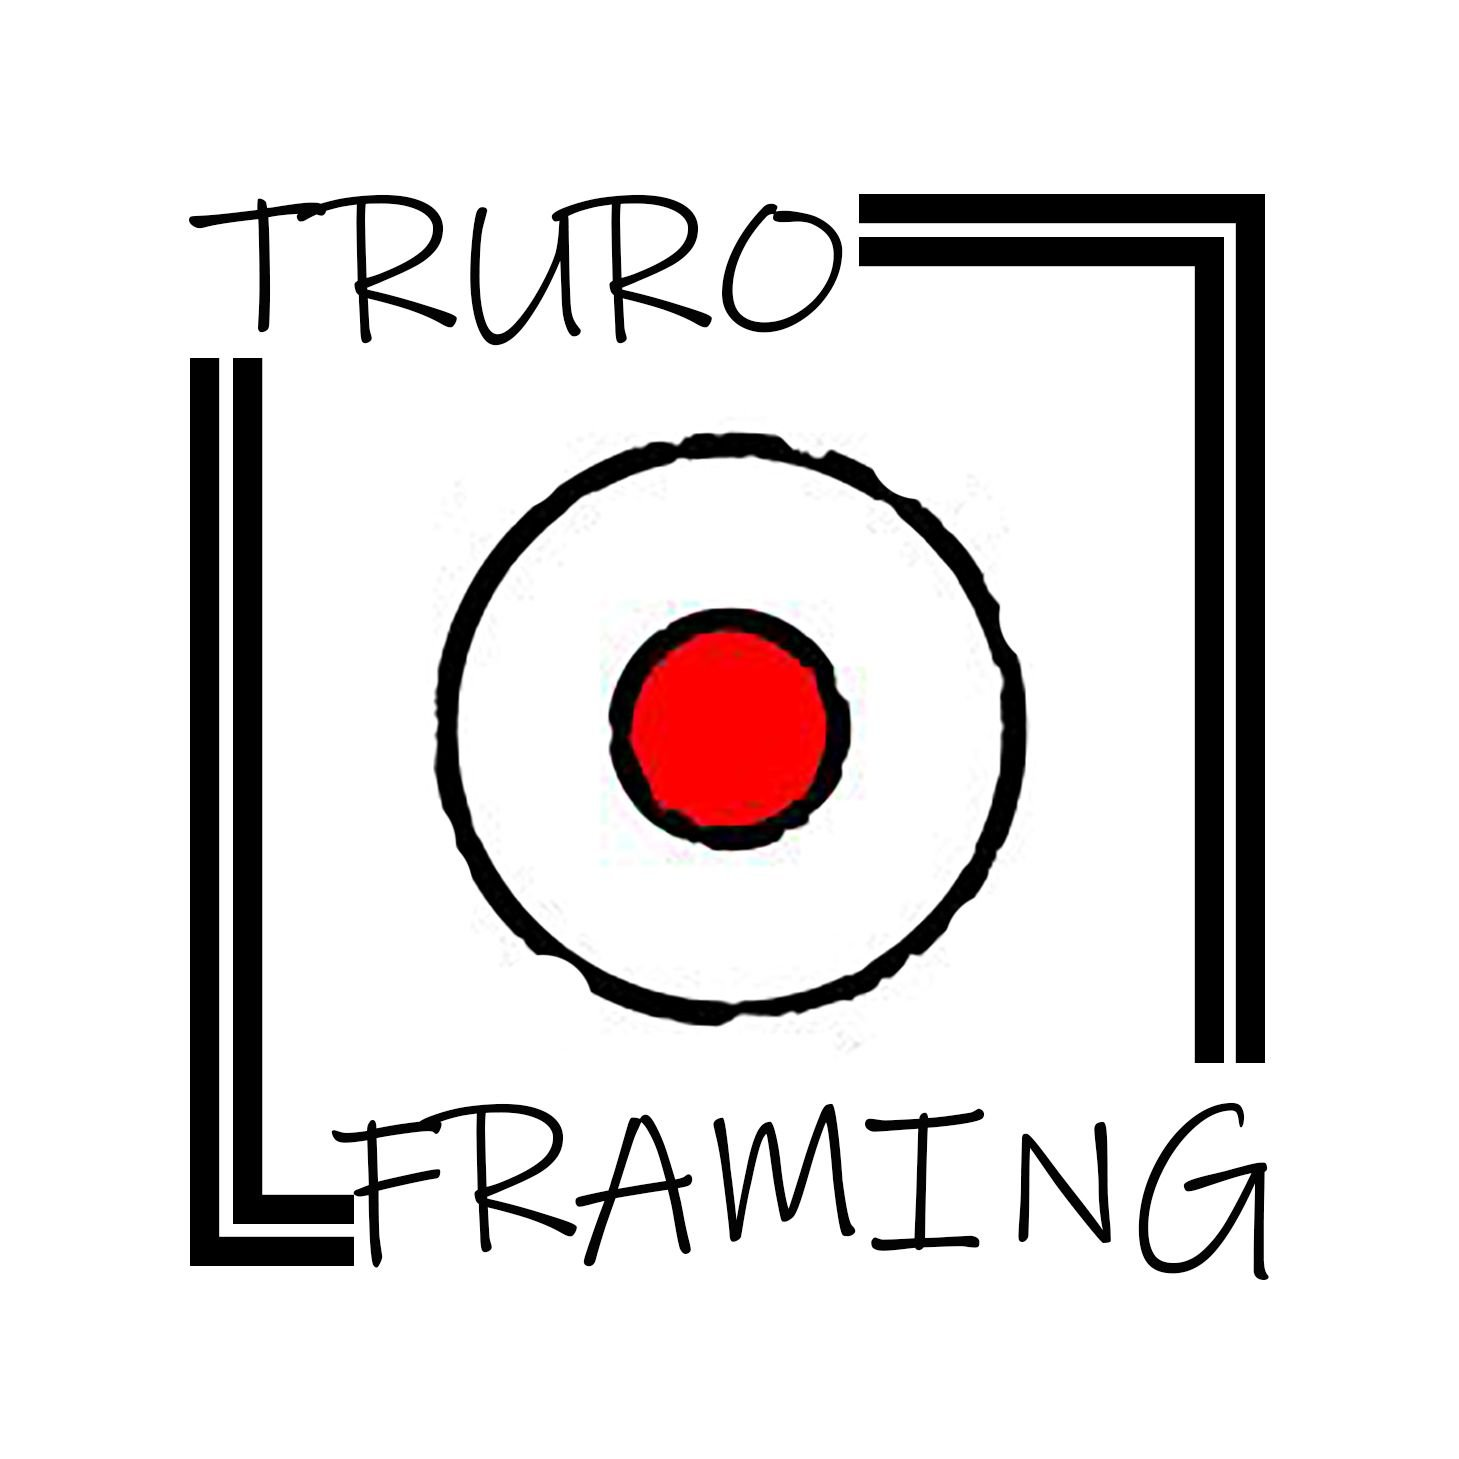 Truro Framing logo